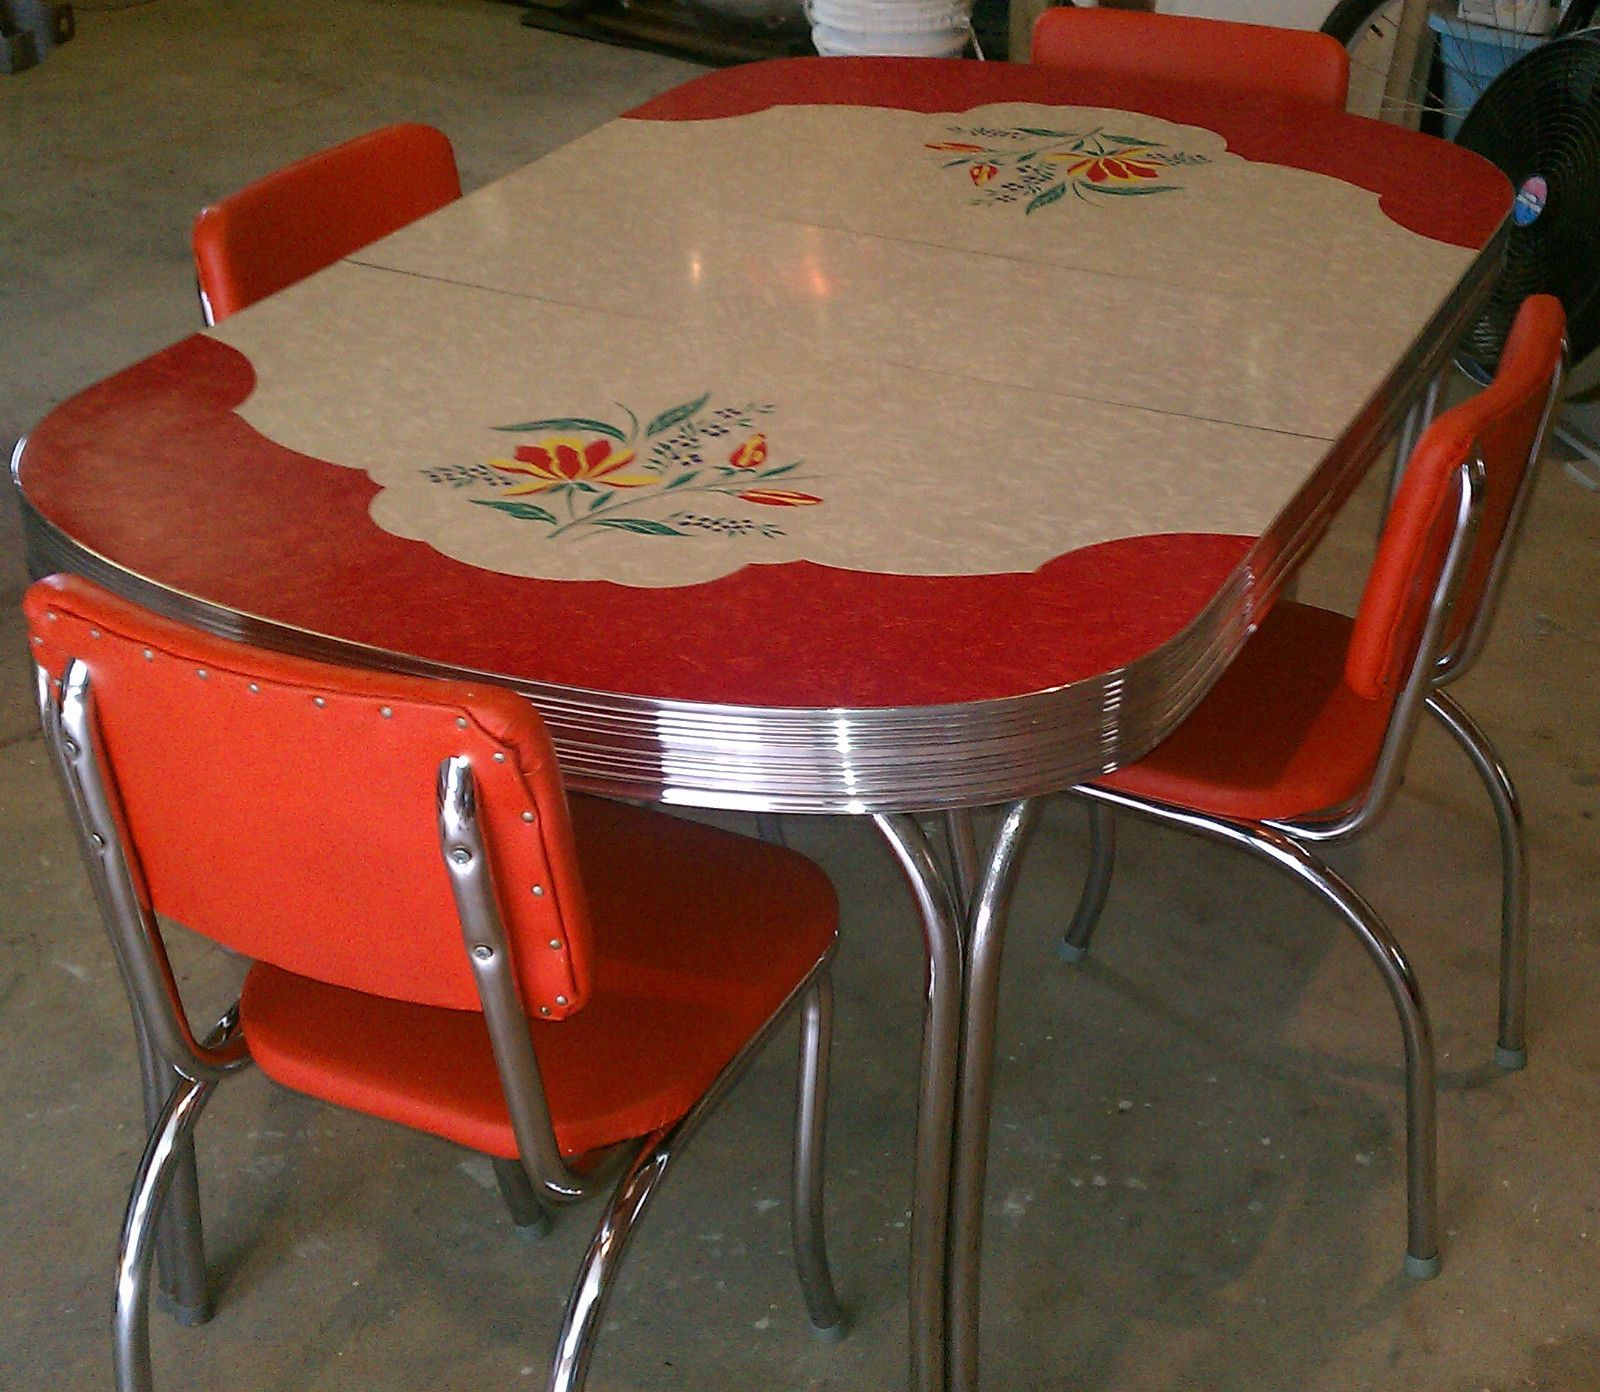 Vintage Kitchen Formica Table 4 Chairs Chrome Orange Red White Gray Retro Eames Formica Table